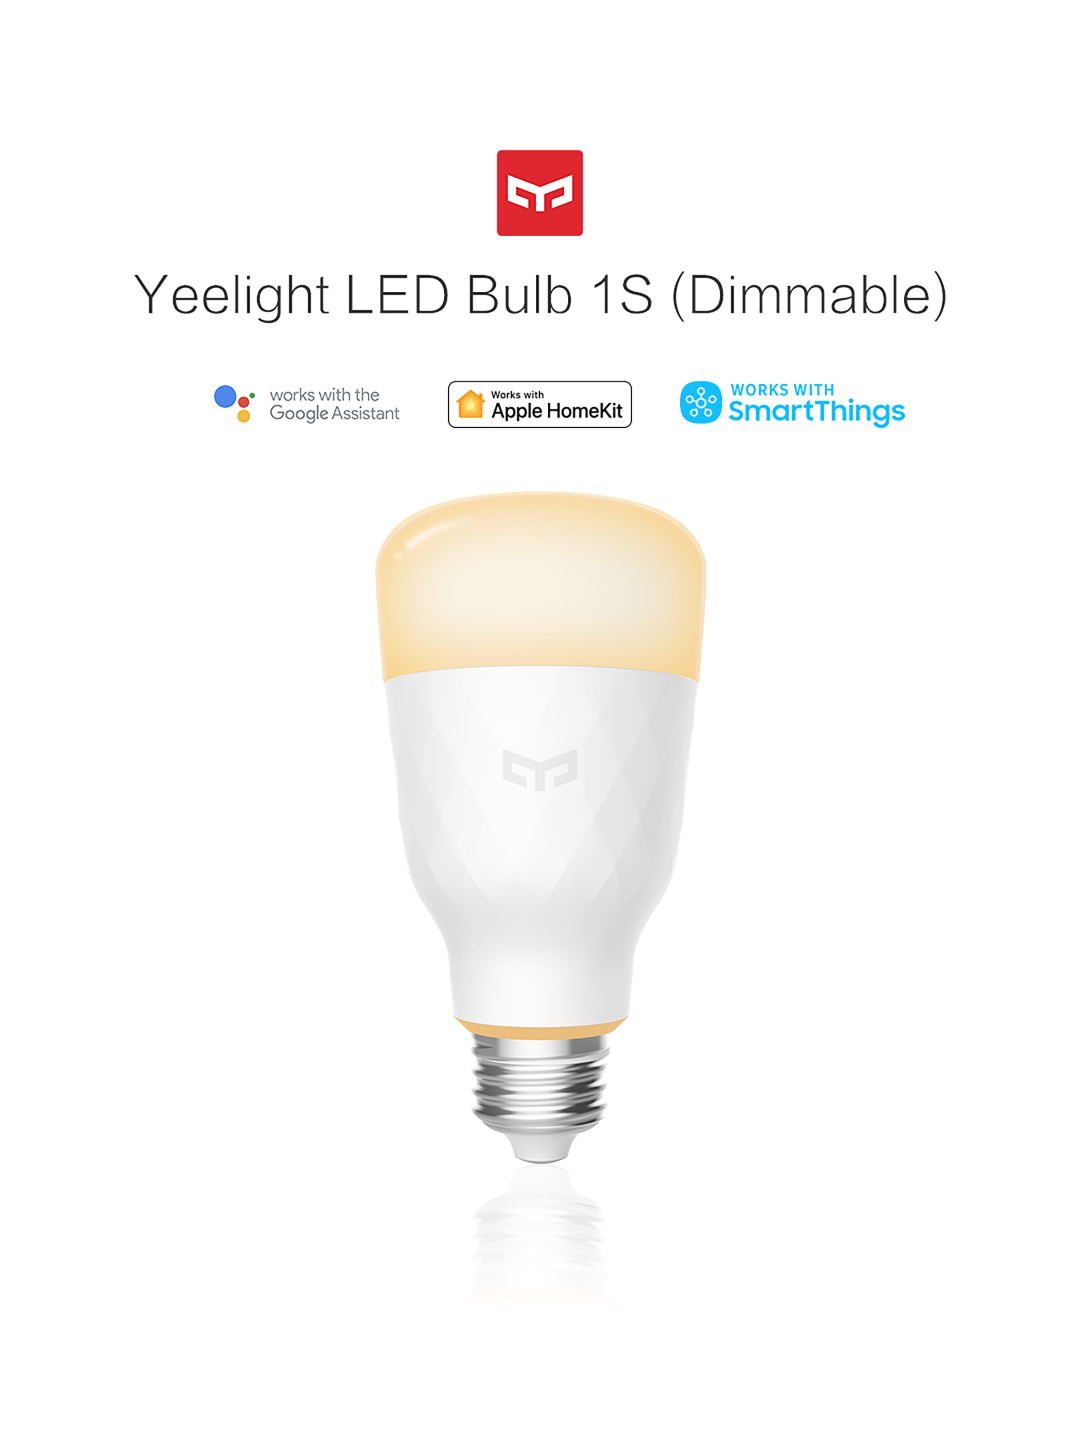 Yeelight LED Bulb 1S (Dimmable)